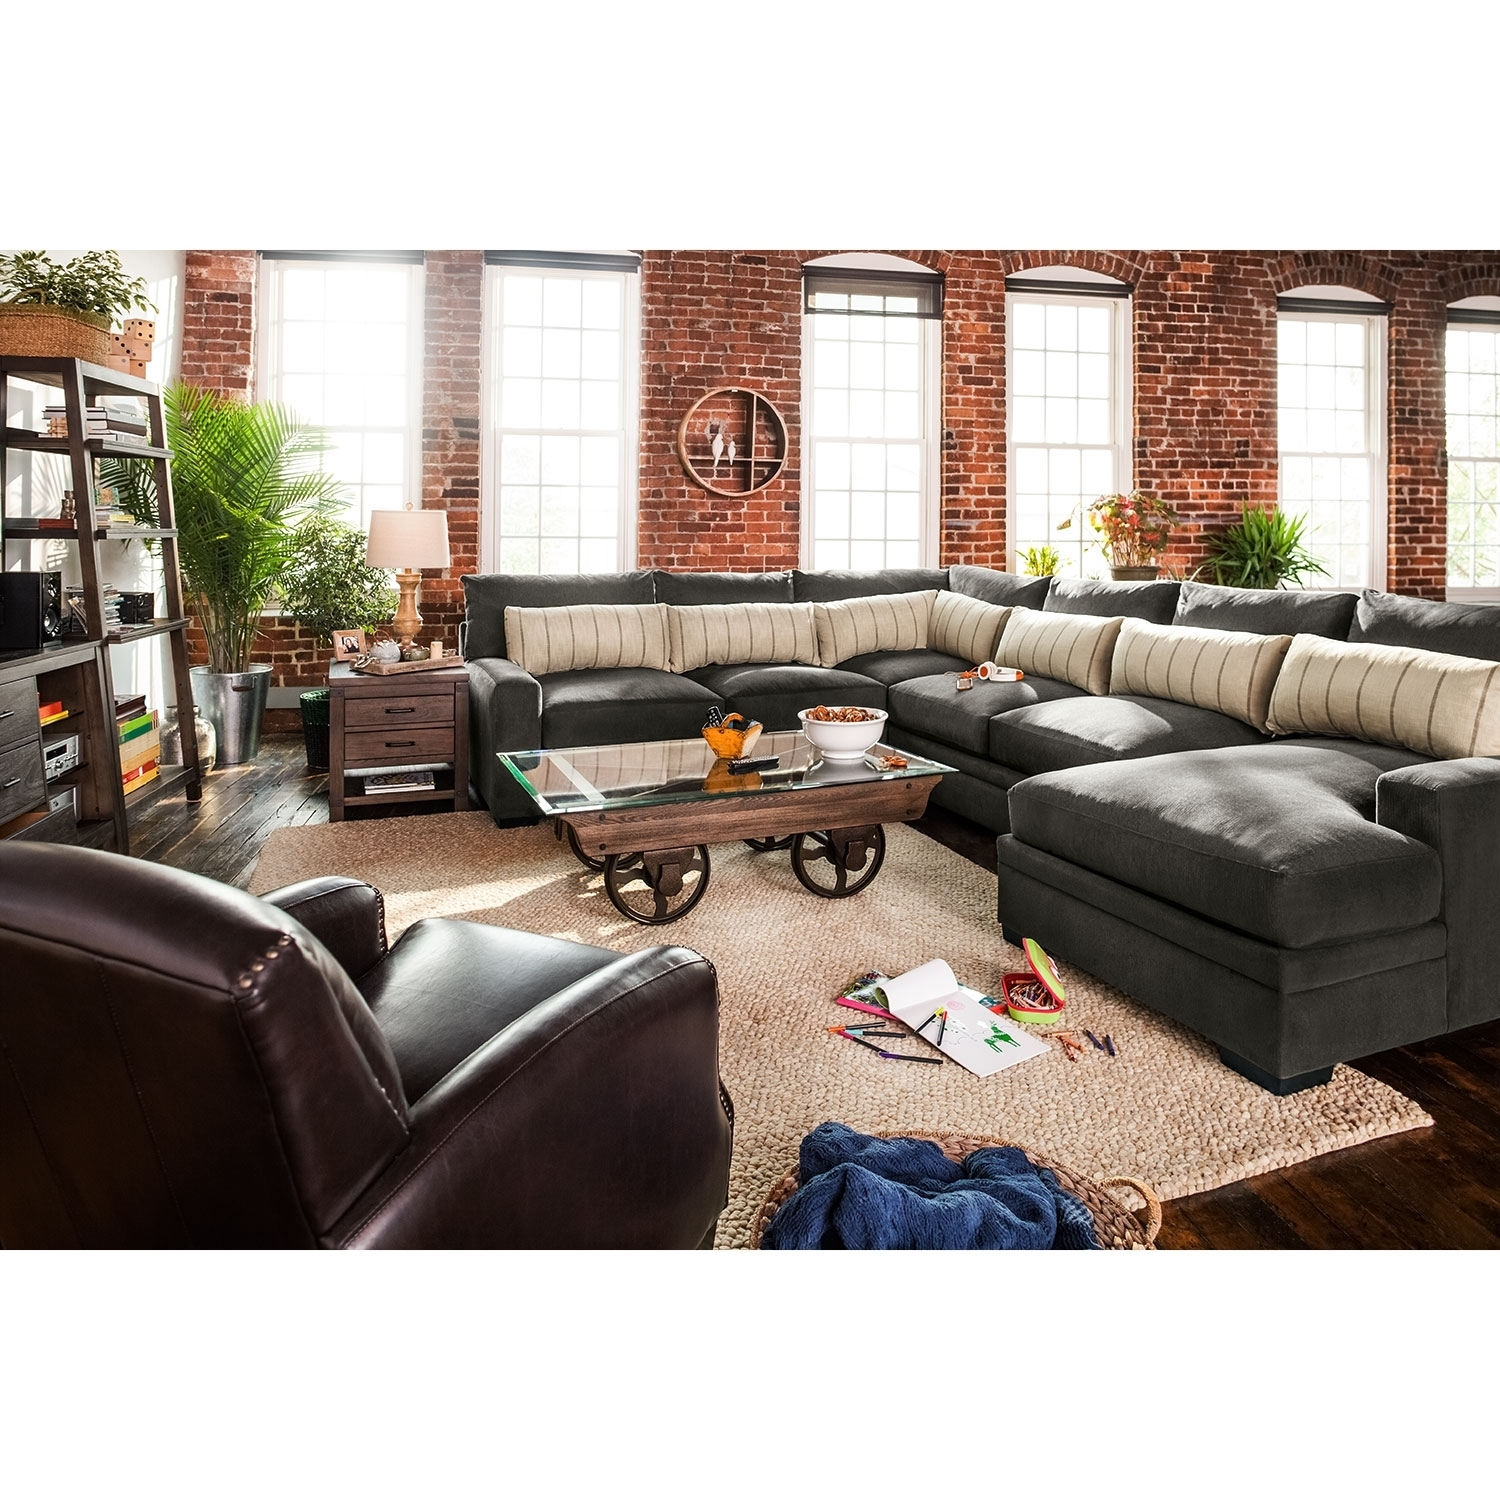 Sofas Etc Ventura - Image Of Ruostejarvi intended for Ventura County Sectional Sofas (Image 8 of 10)